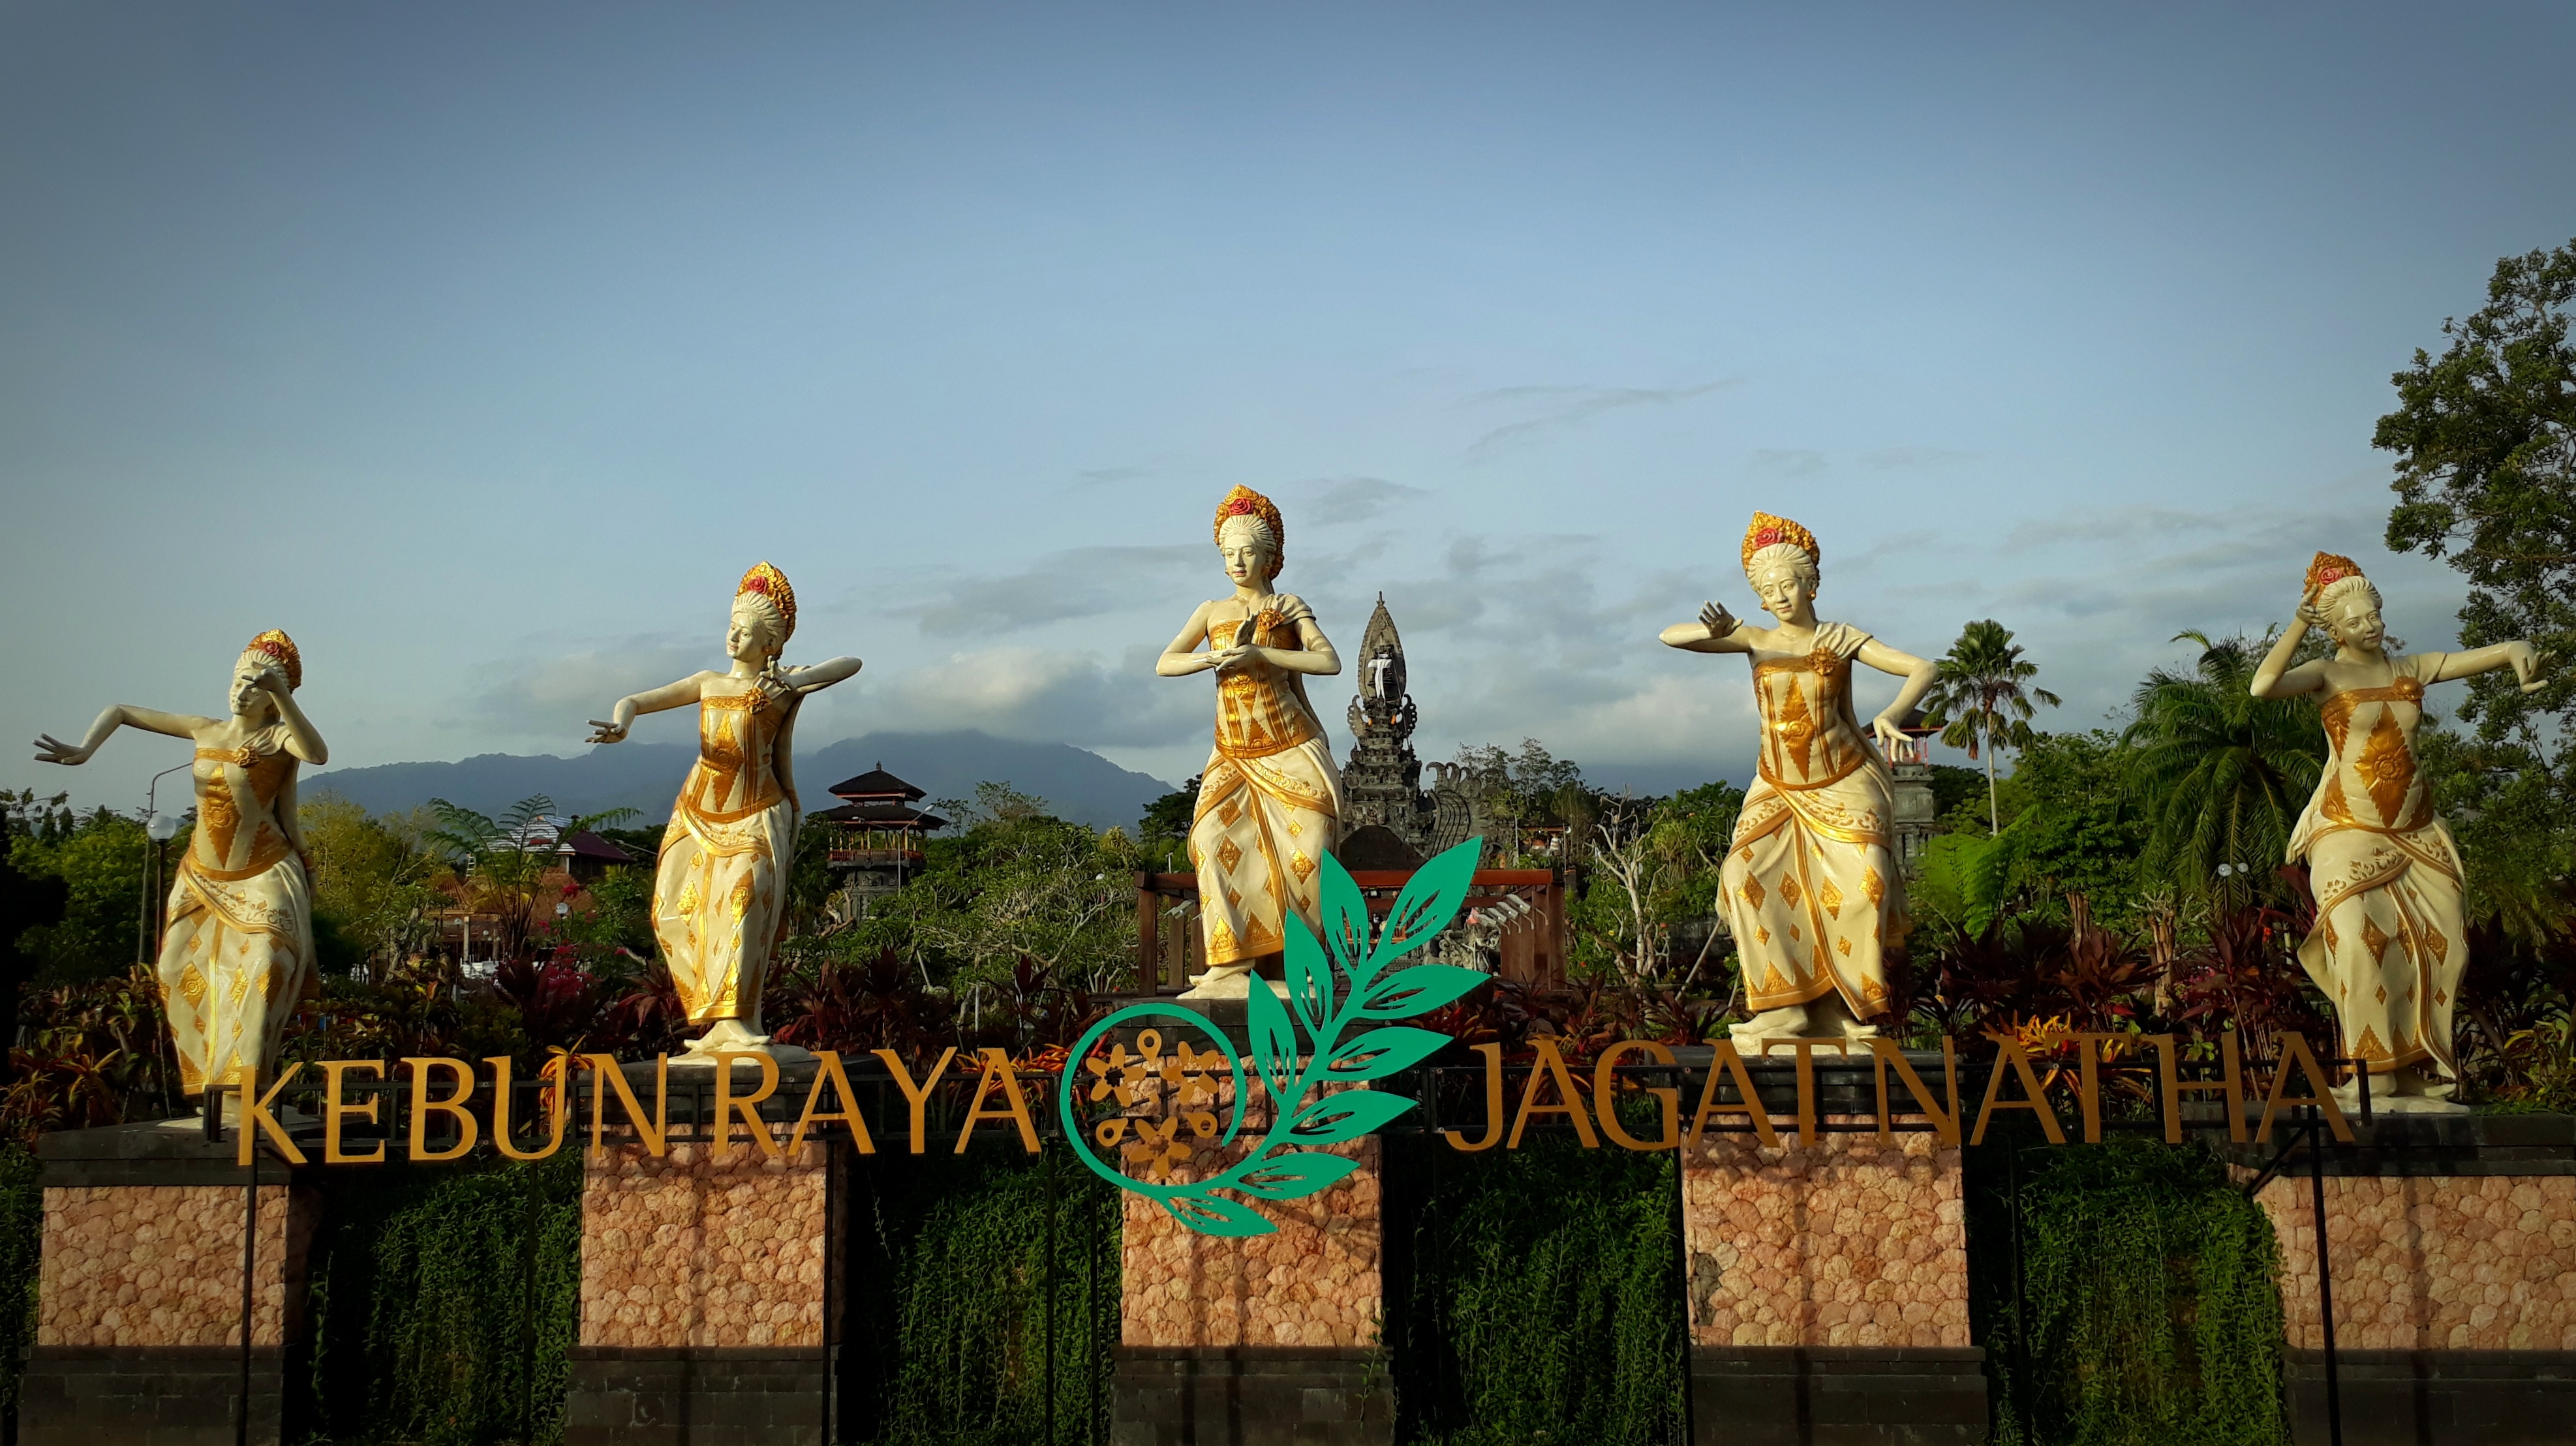 The great view of Jagatnatha Botanic Gardens, Negara,  Jembrana Regency, Bali, Indonesia that will be officially innaugurated on December 5, 2019